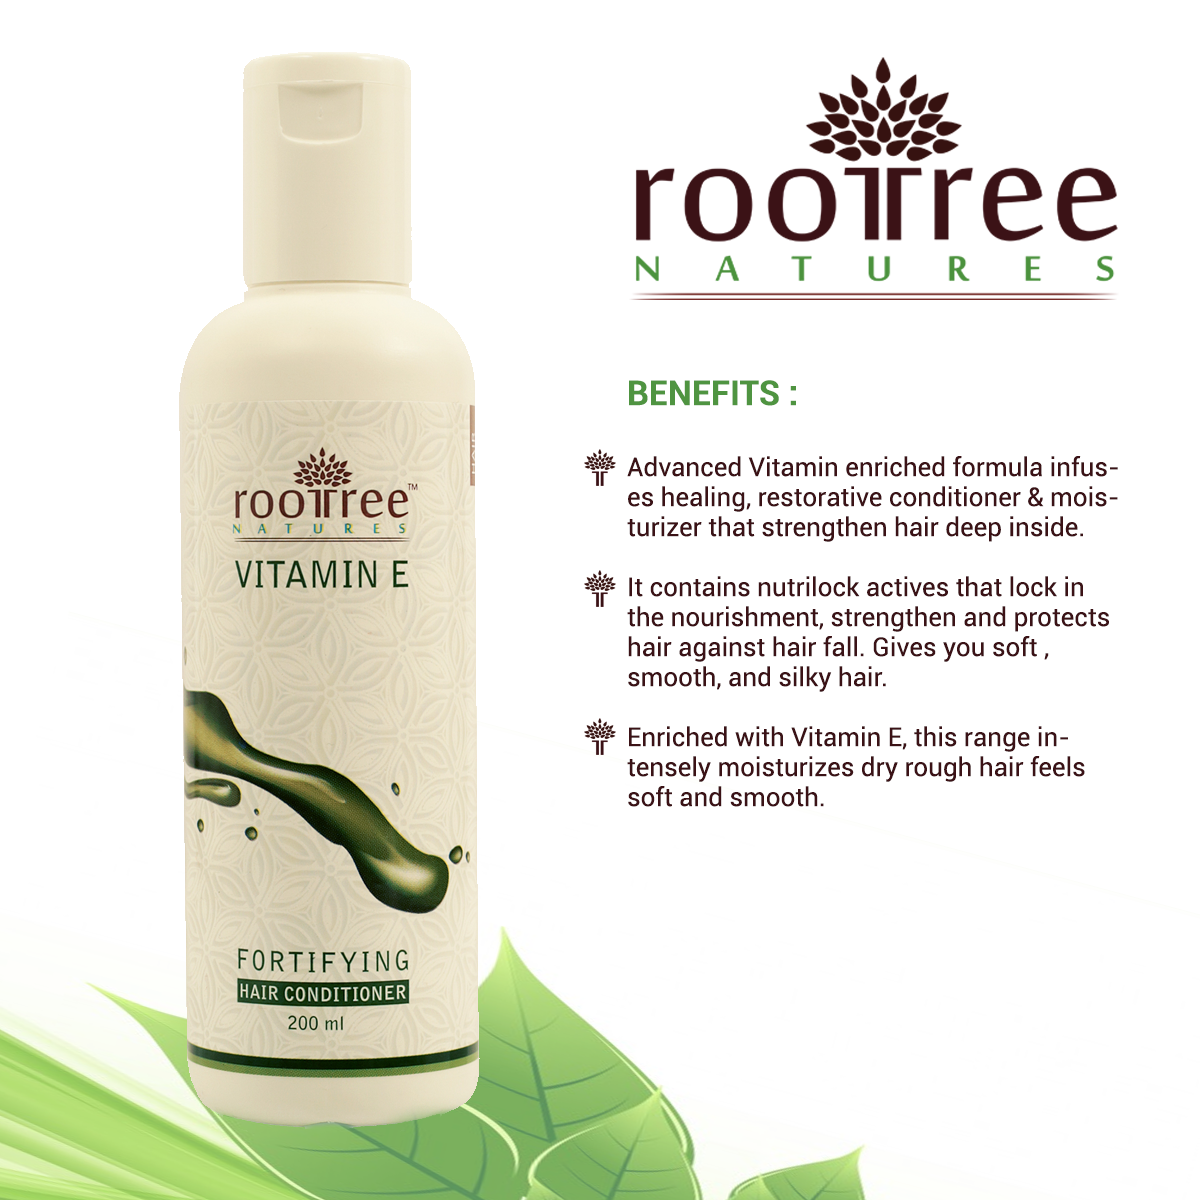 Roottree Natures Vitamin E Fortifying Hair Conditioner